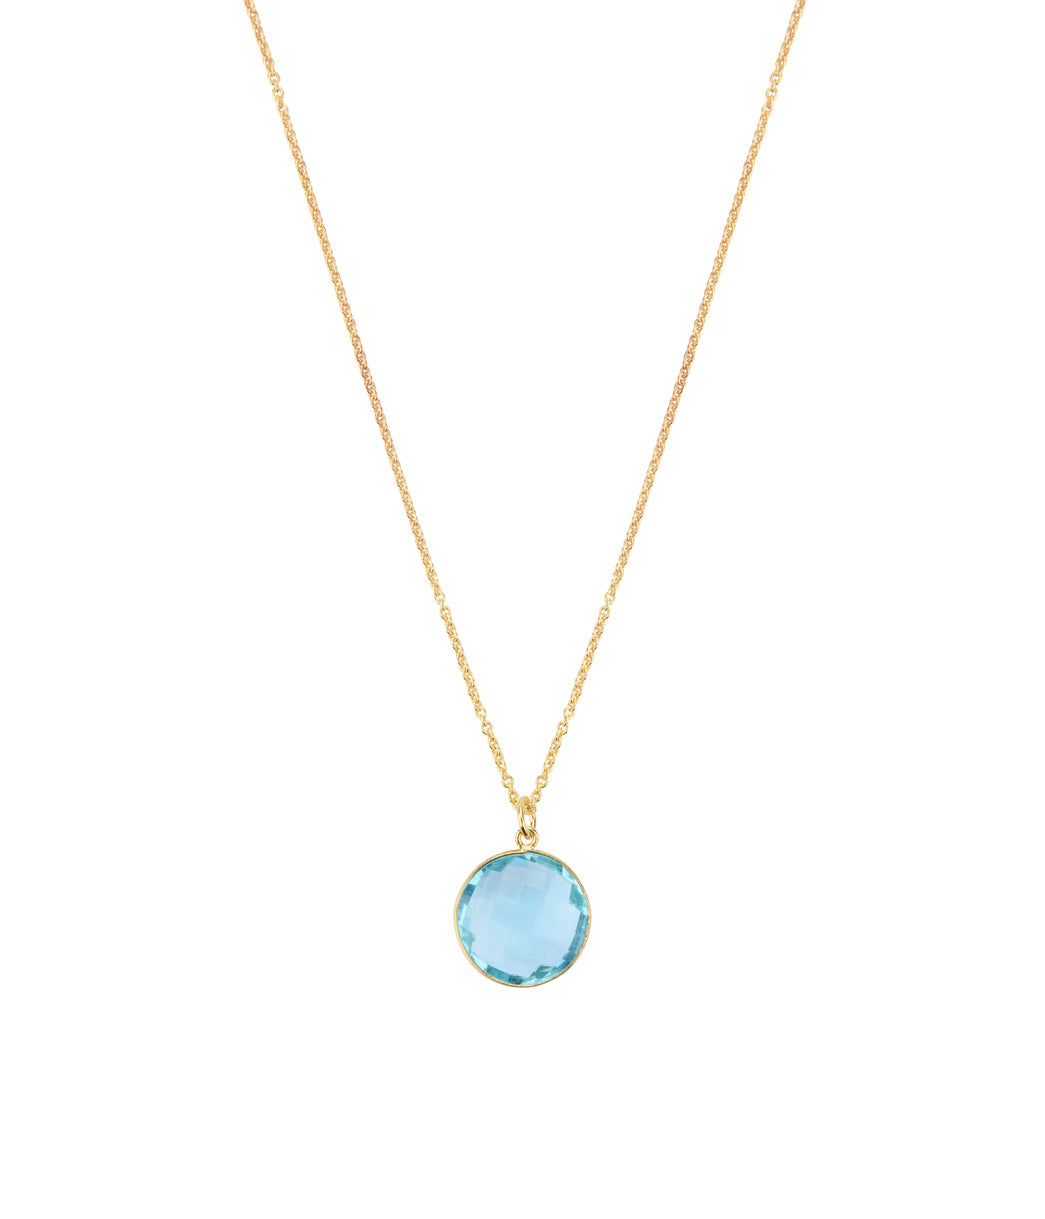 Beryl Aquamarine Necklace